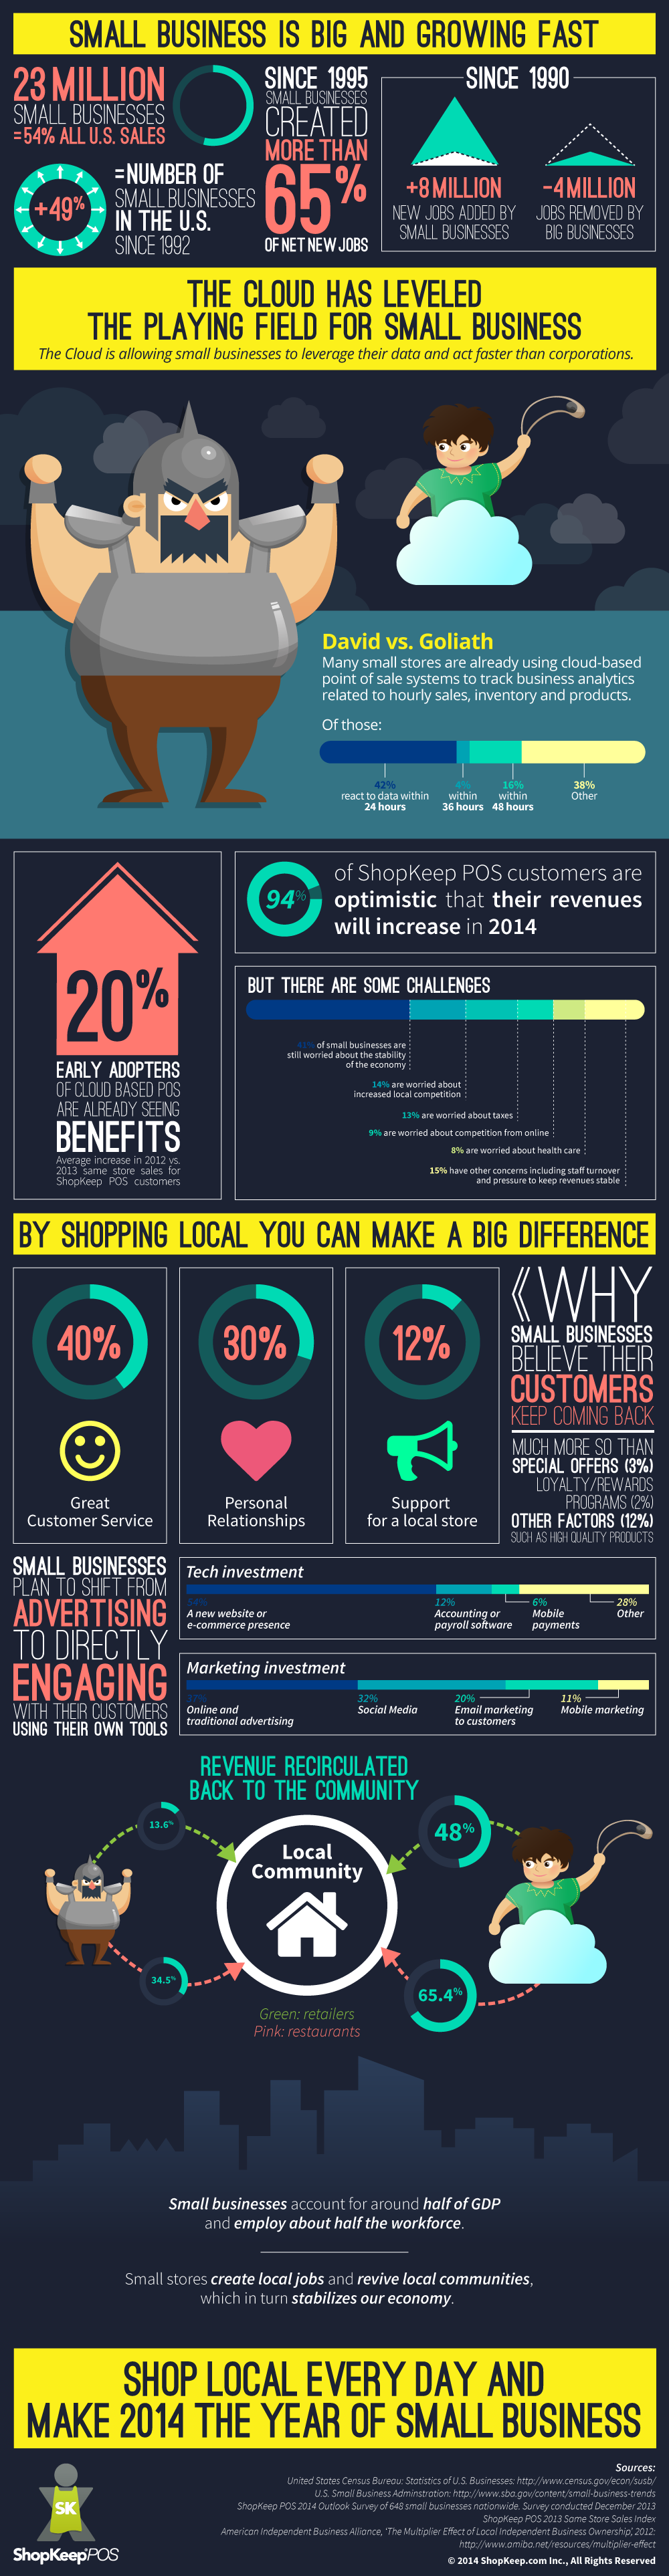 Small Business Growth in 2014 [INFOGRAPHIC]